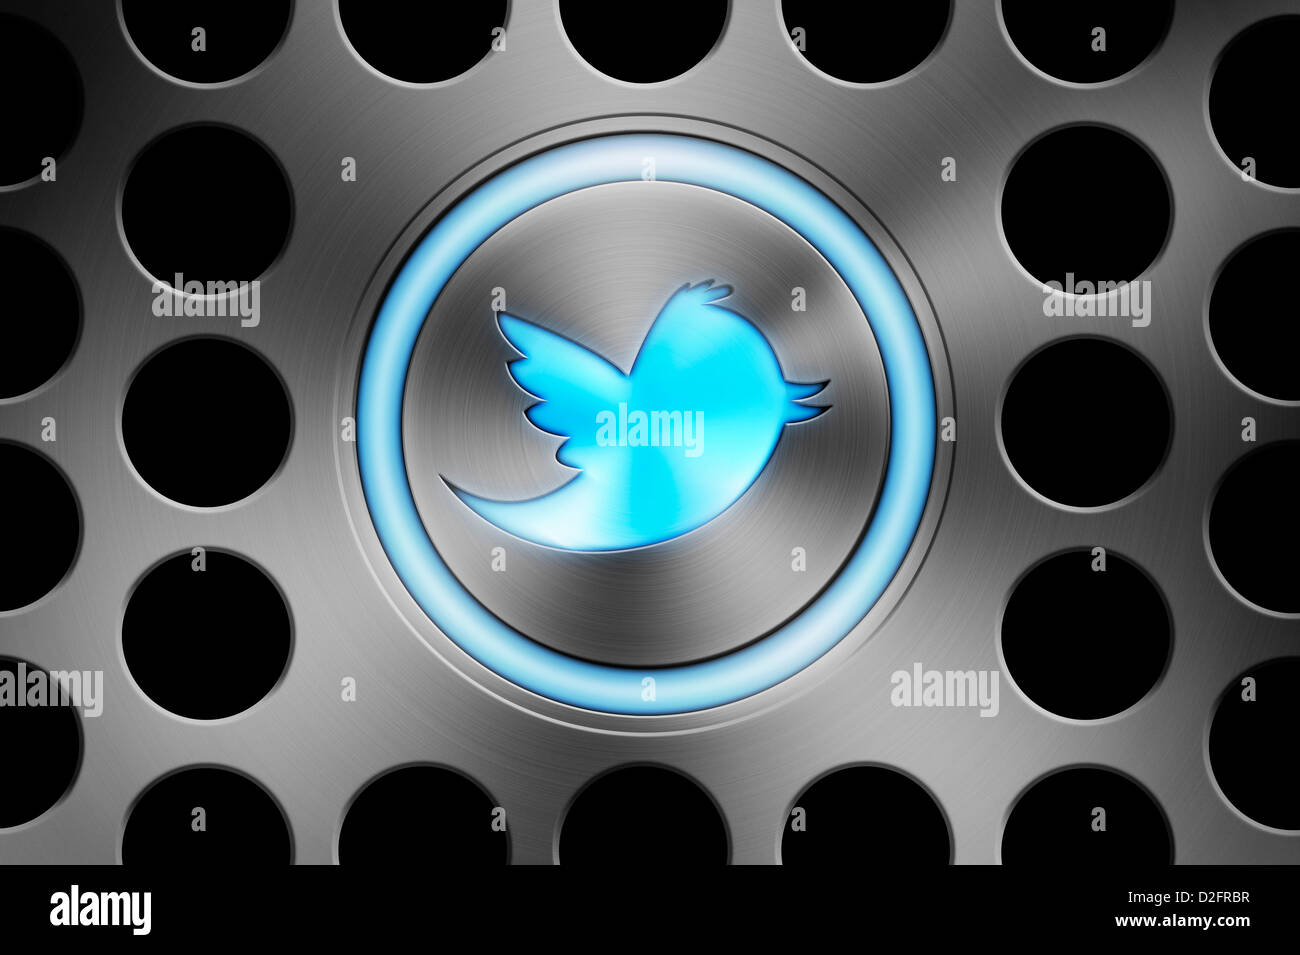 TWITTER icon button - Stock Image